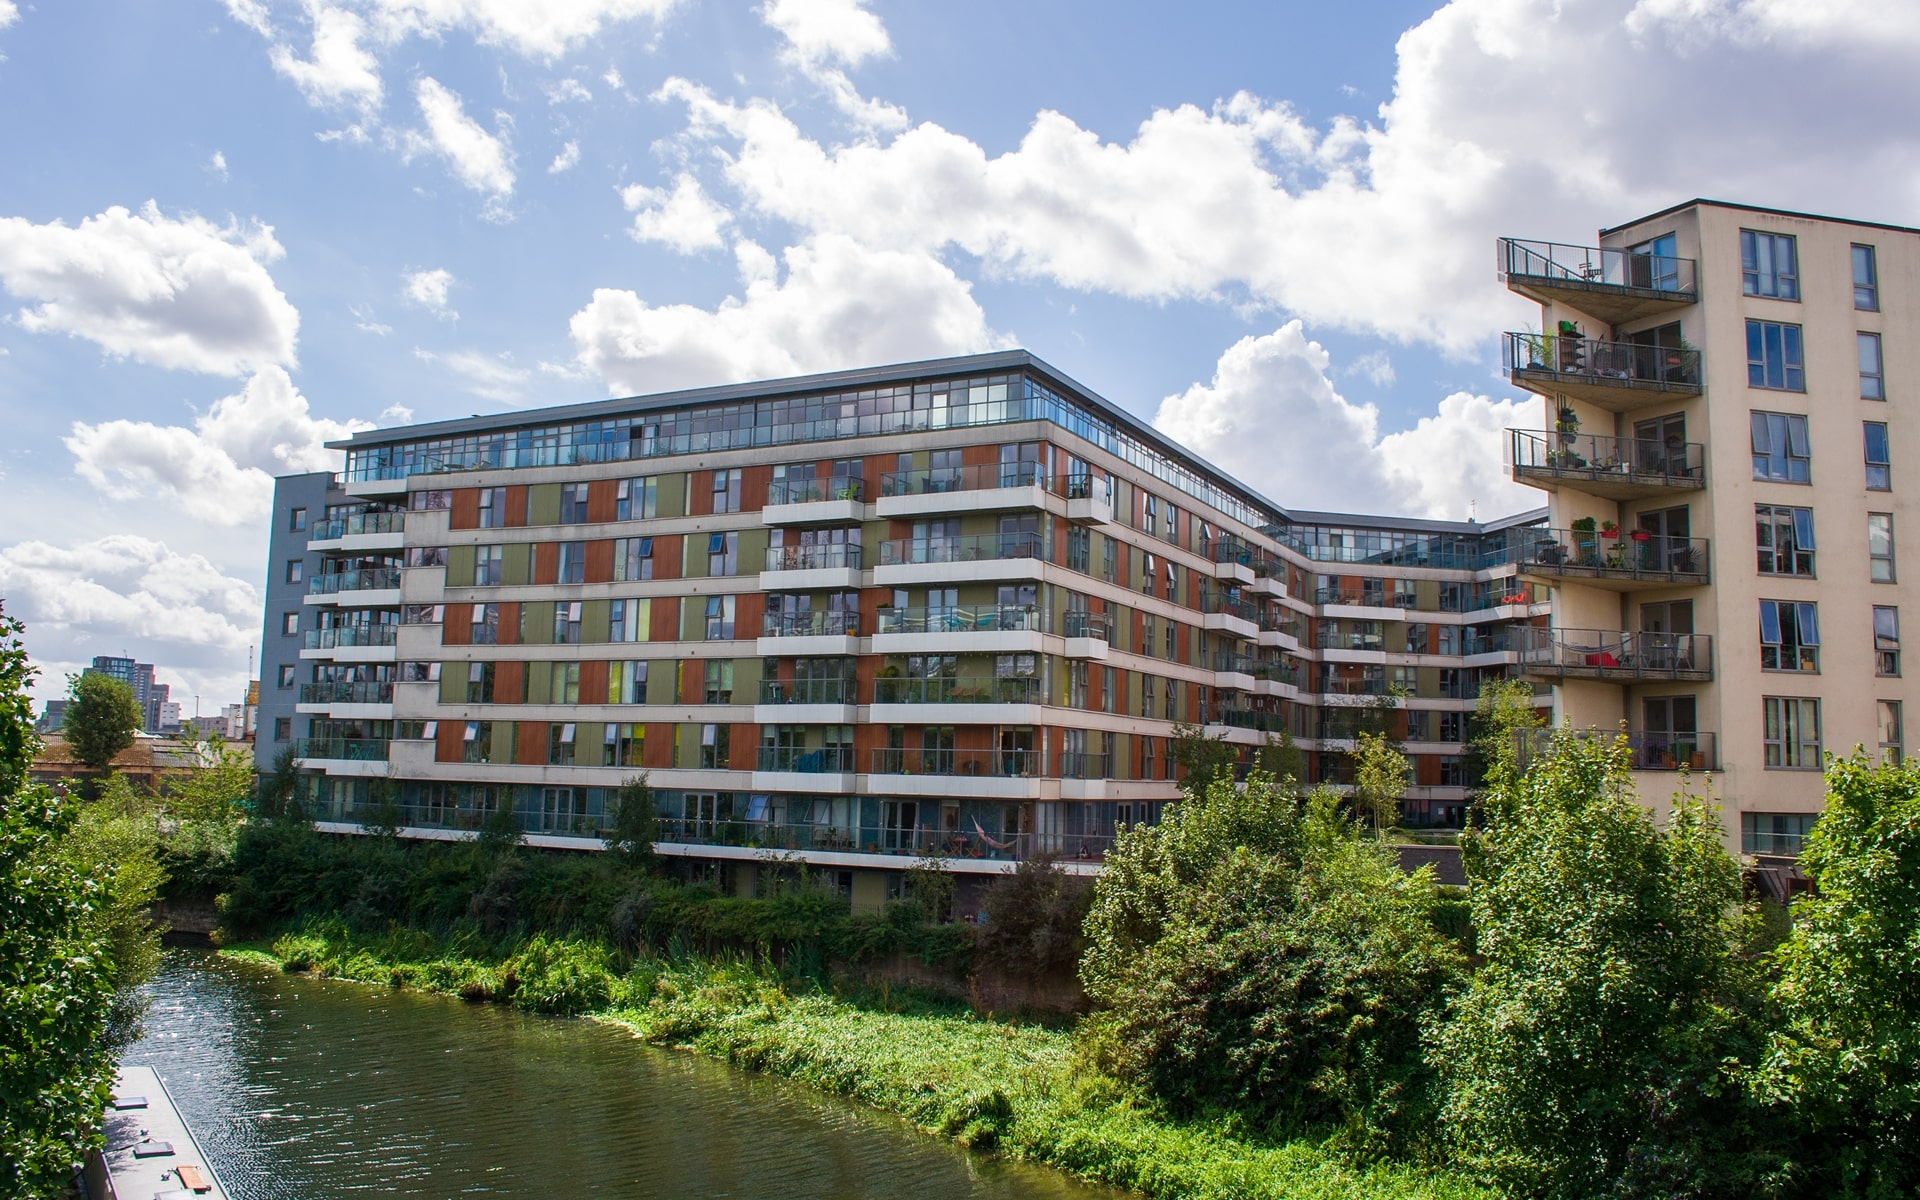 417 Riverside E3 pictured from the opposite bank of the River Lea